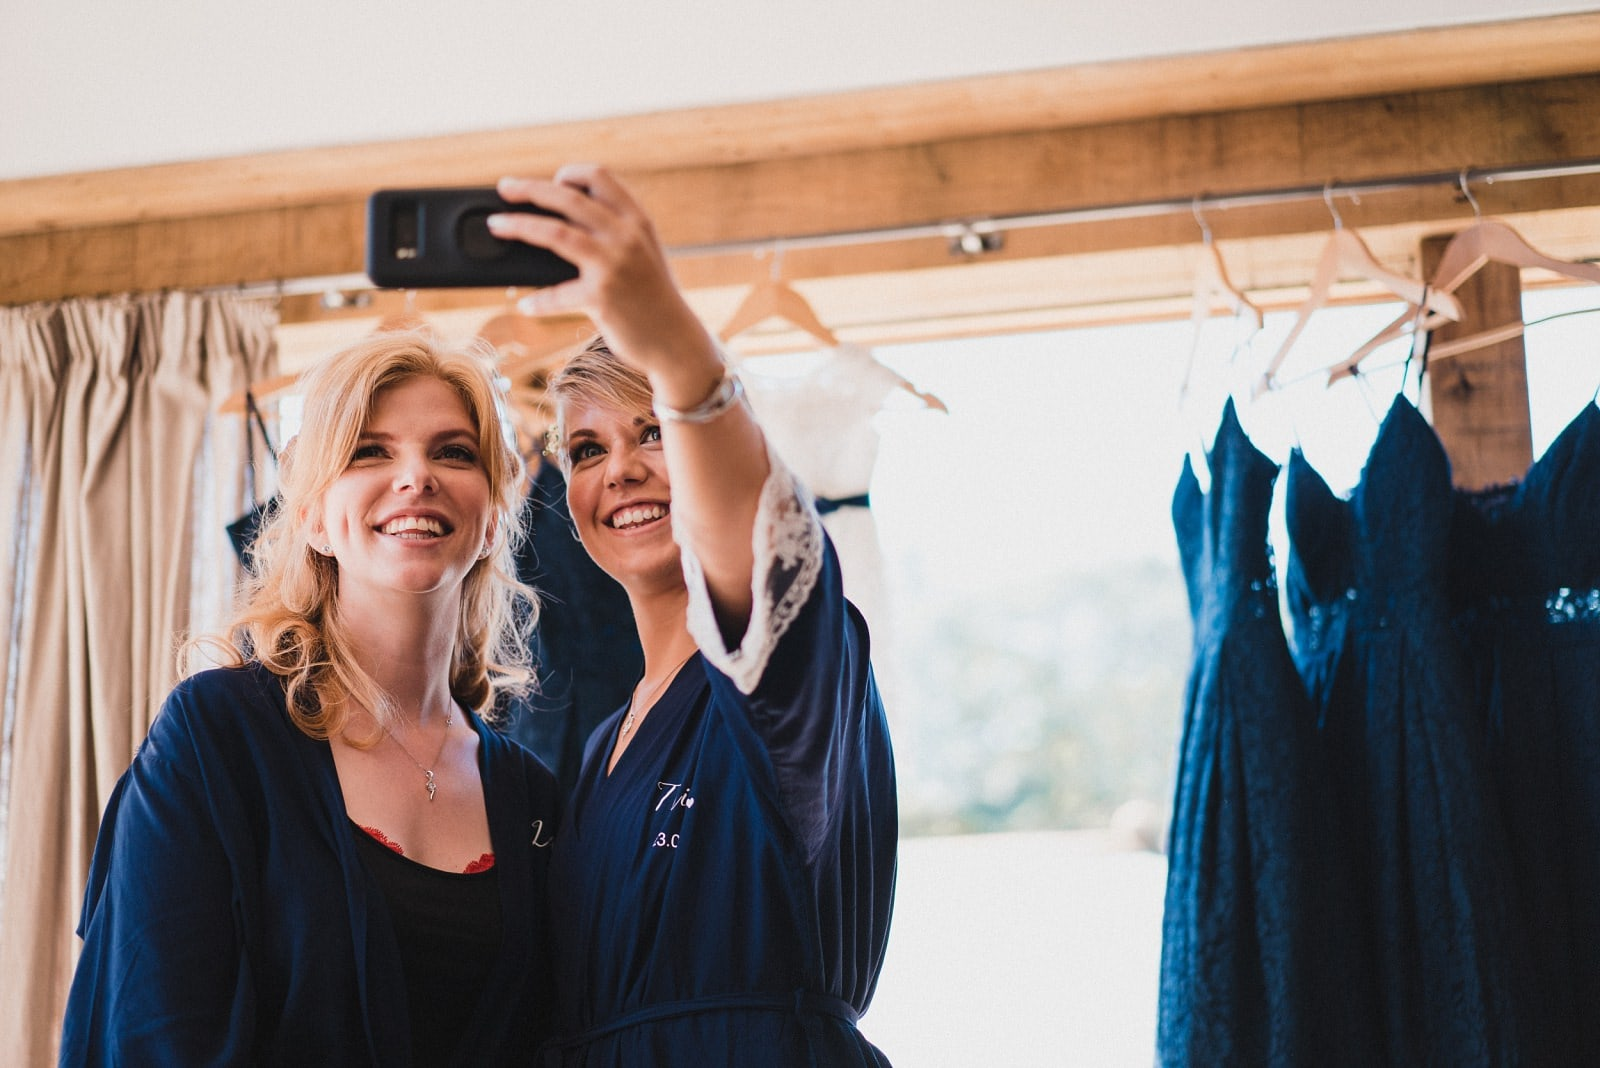 Two bridesmaids taking a selfie while getting ready for the wedding day